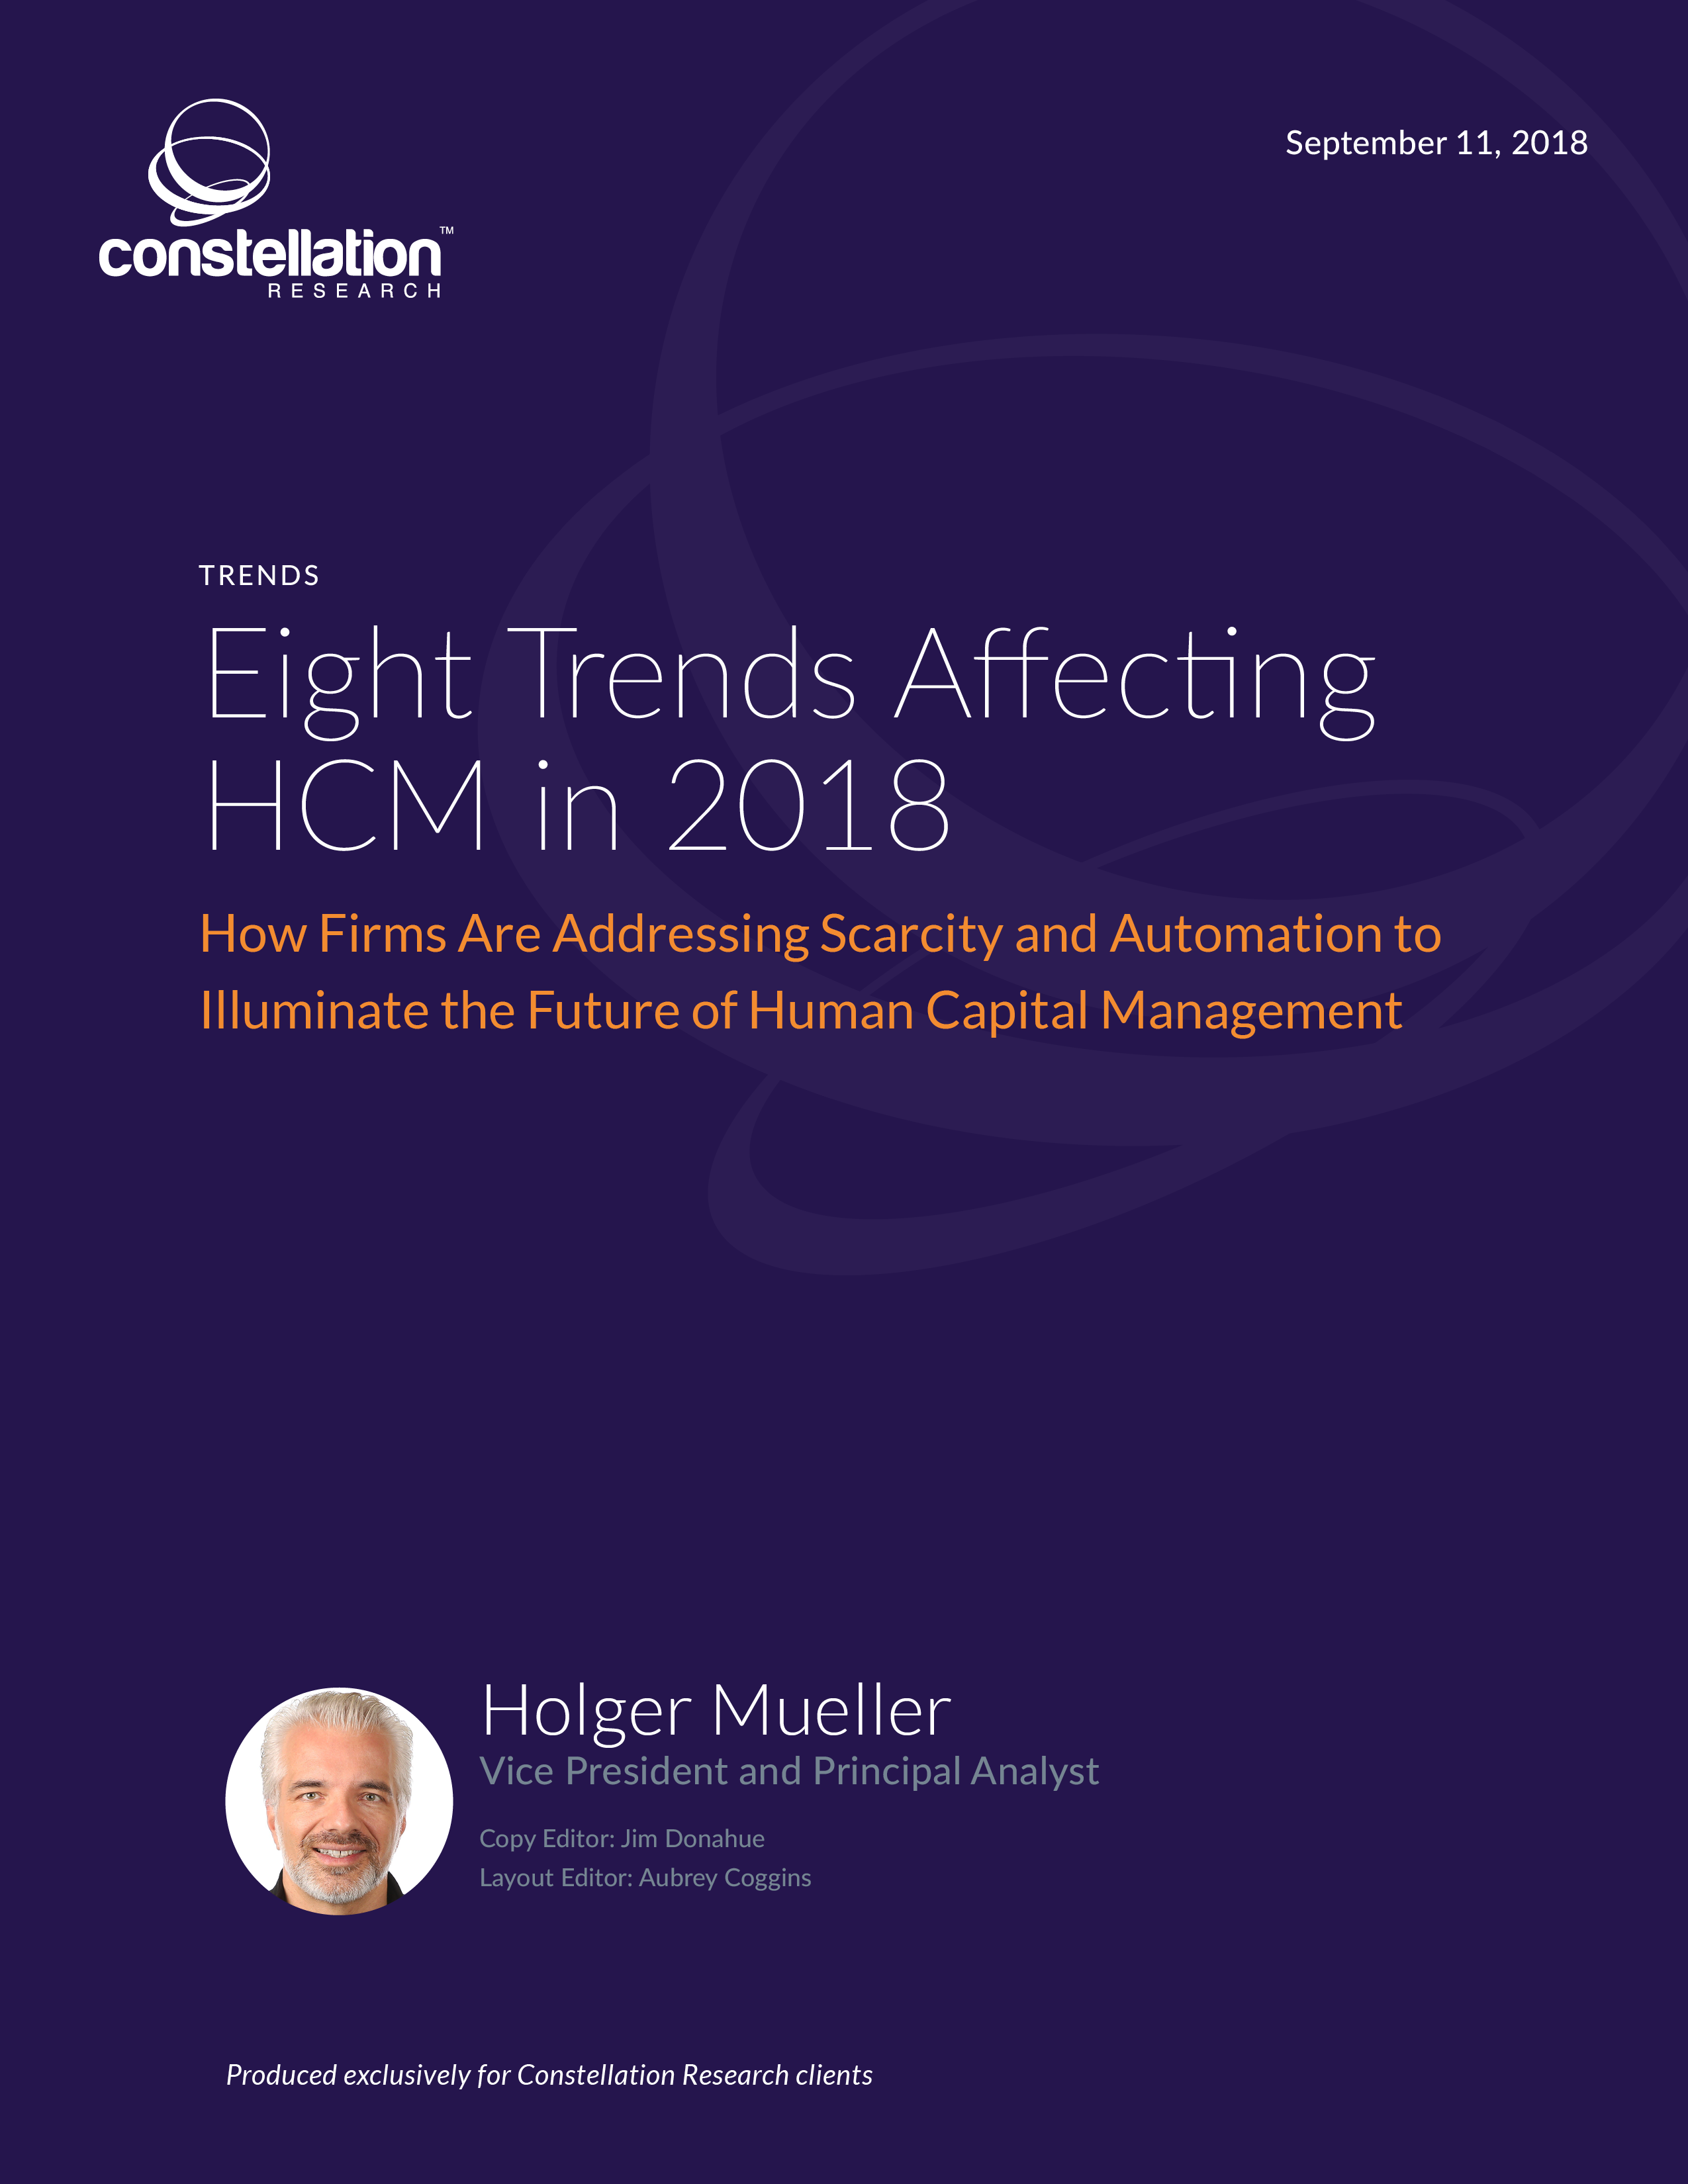 Eight trends affecting HCM in 2018